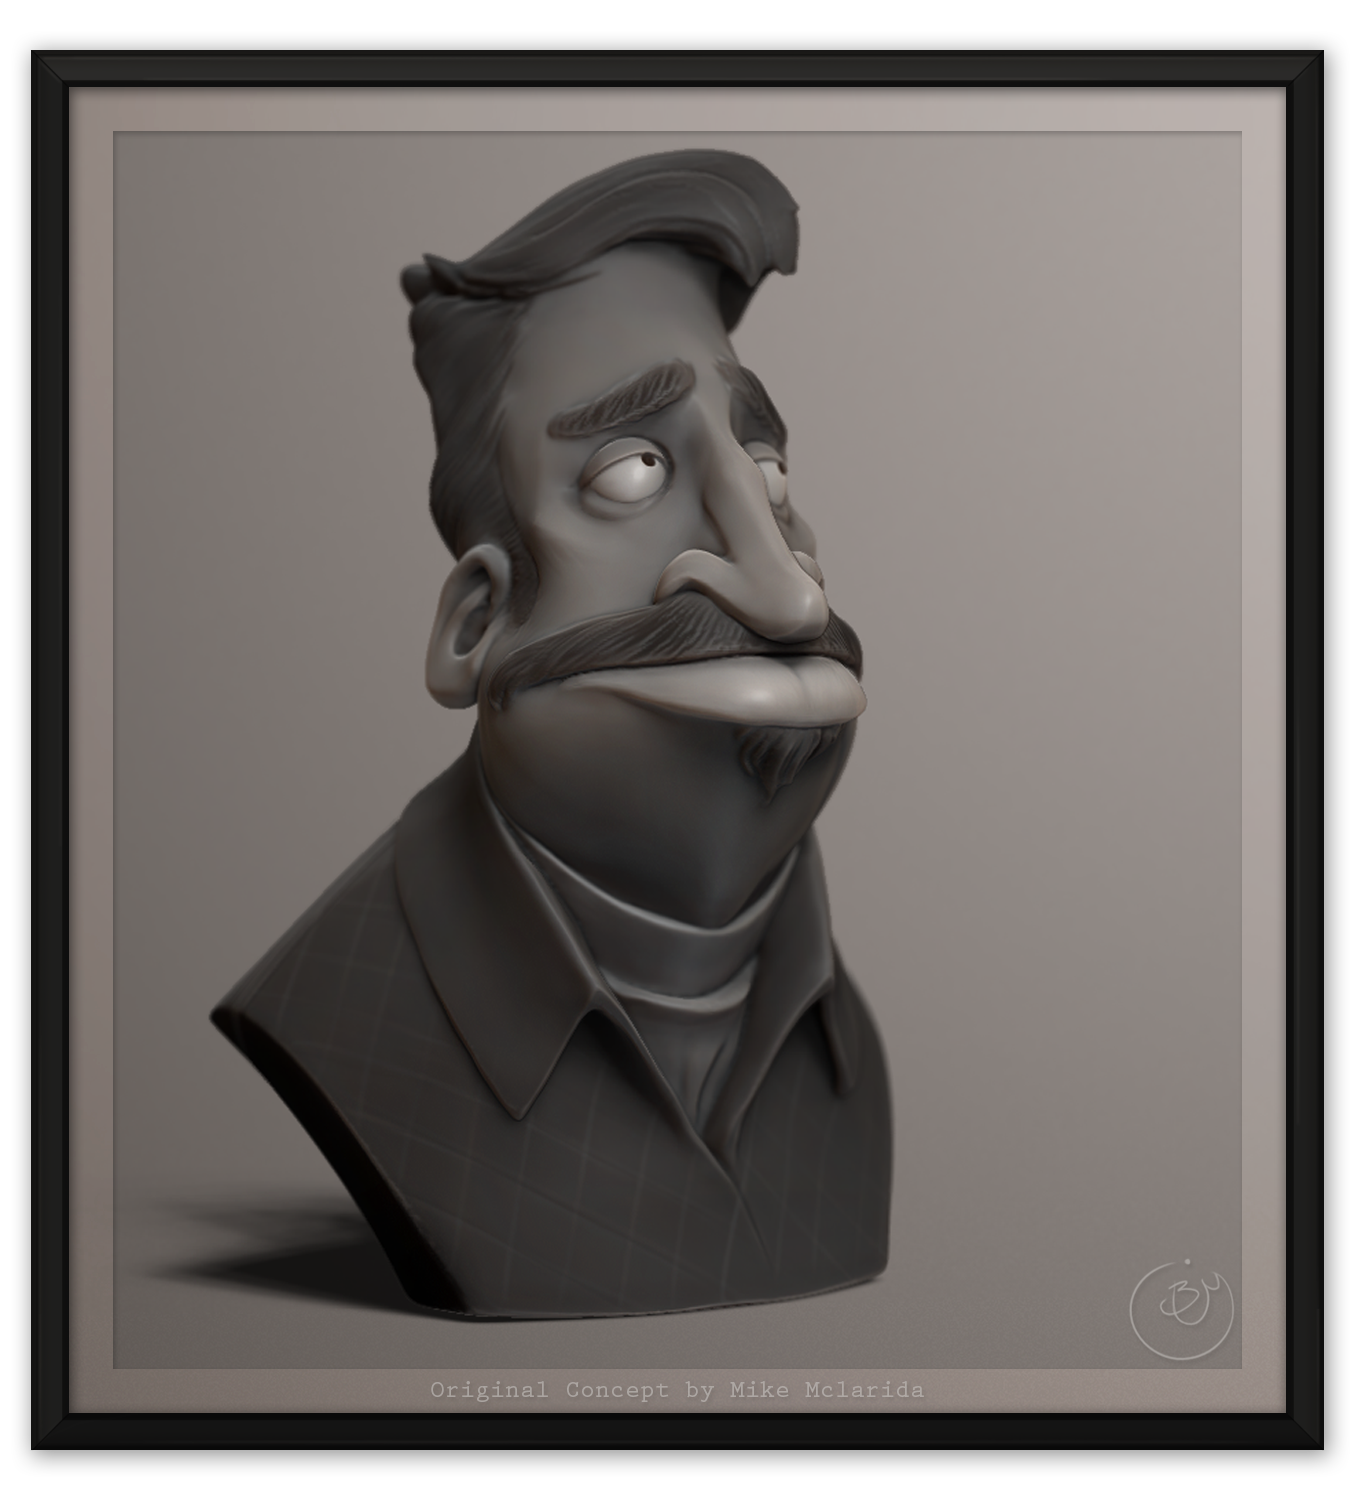 Bust from Concept by Mike Mclarida